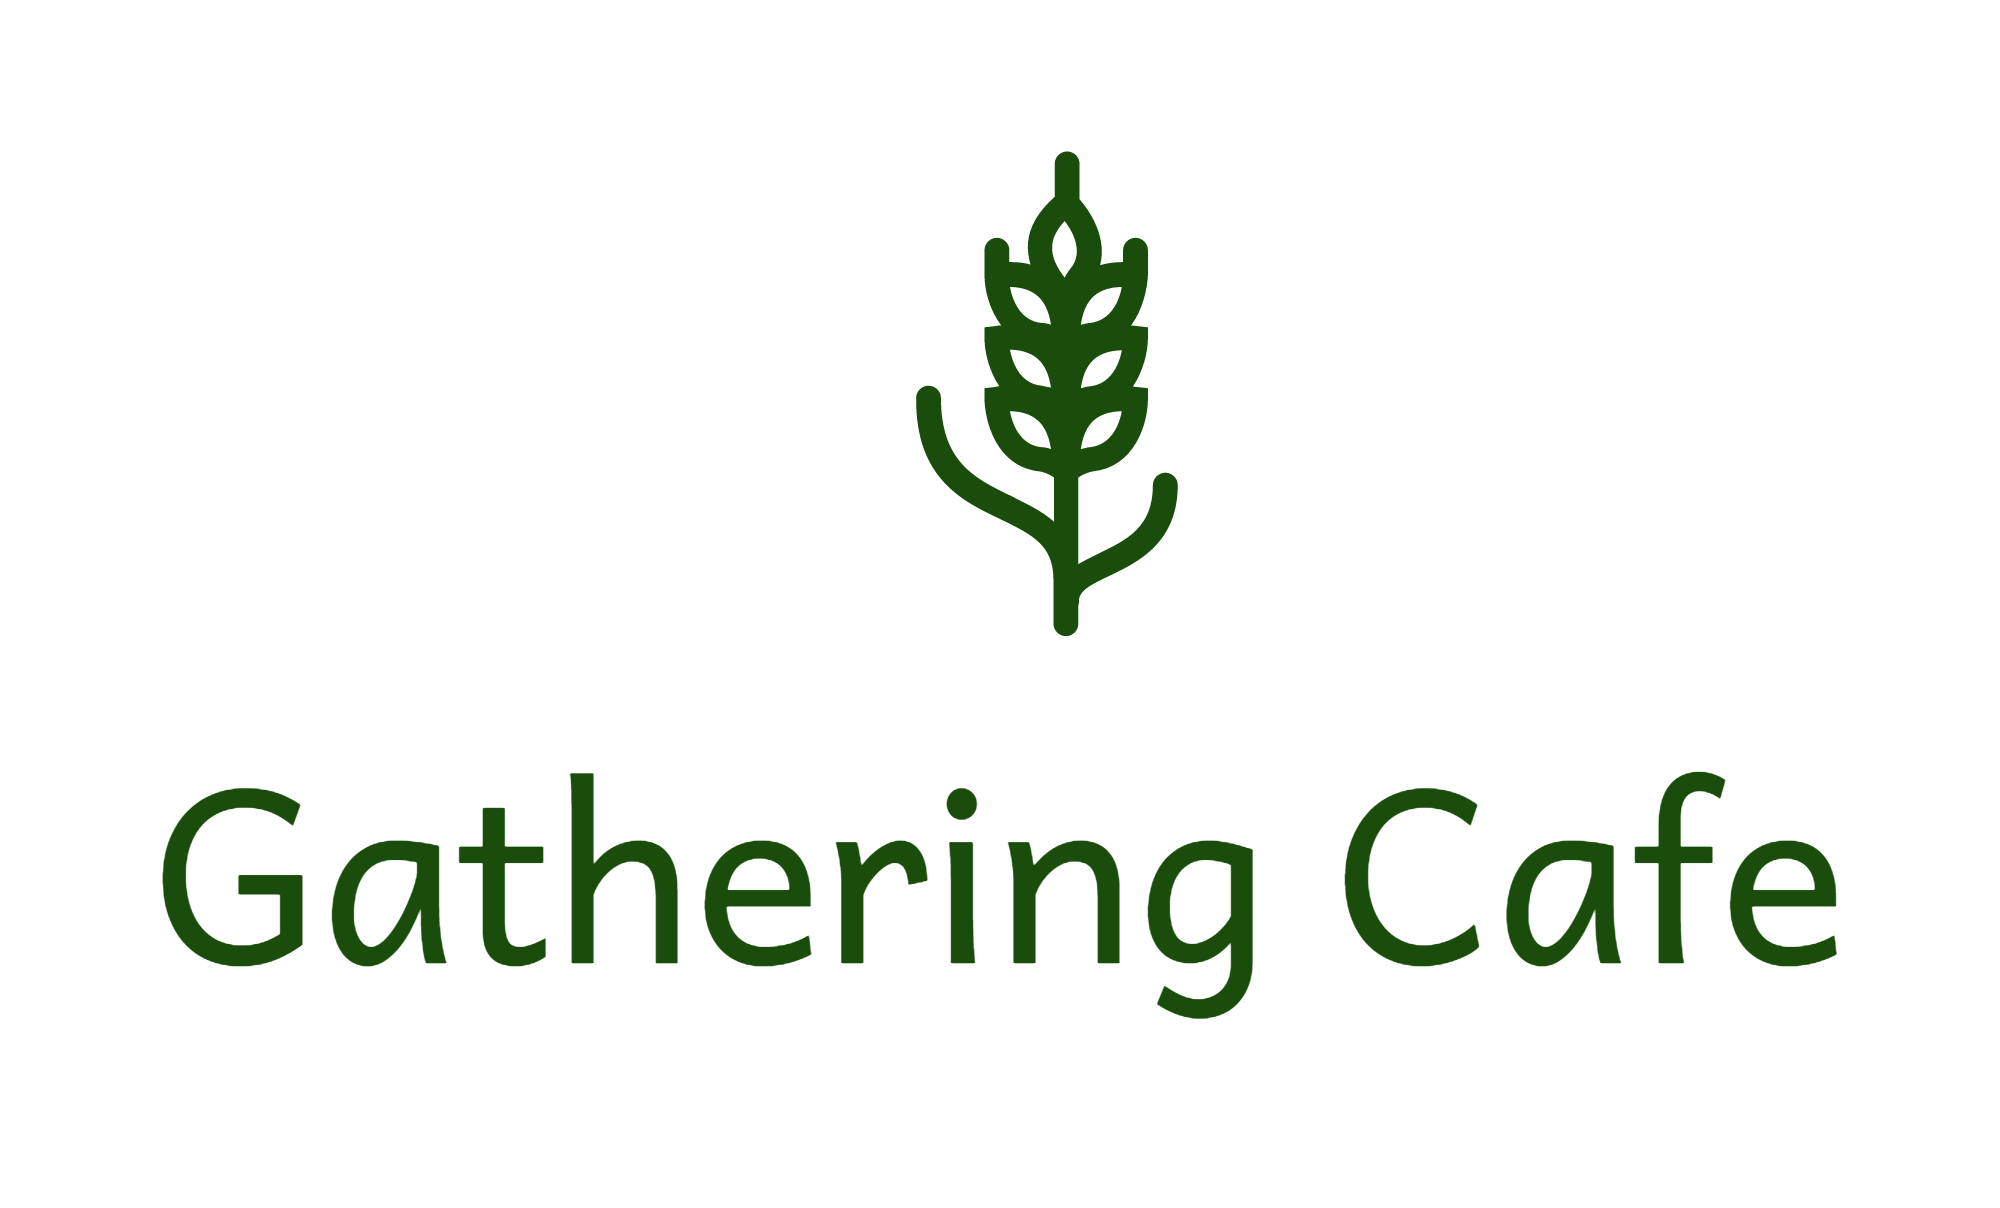 The Gathering Cafe Restaurant